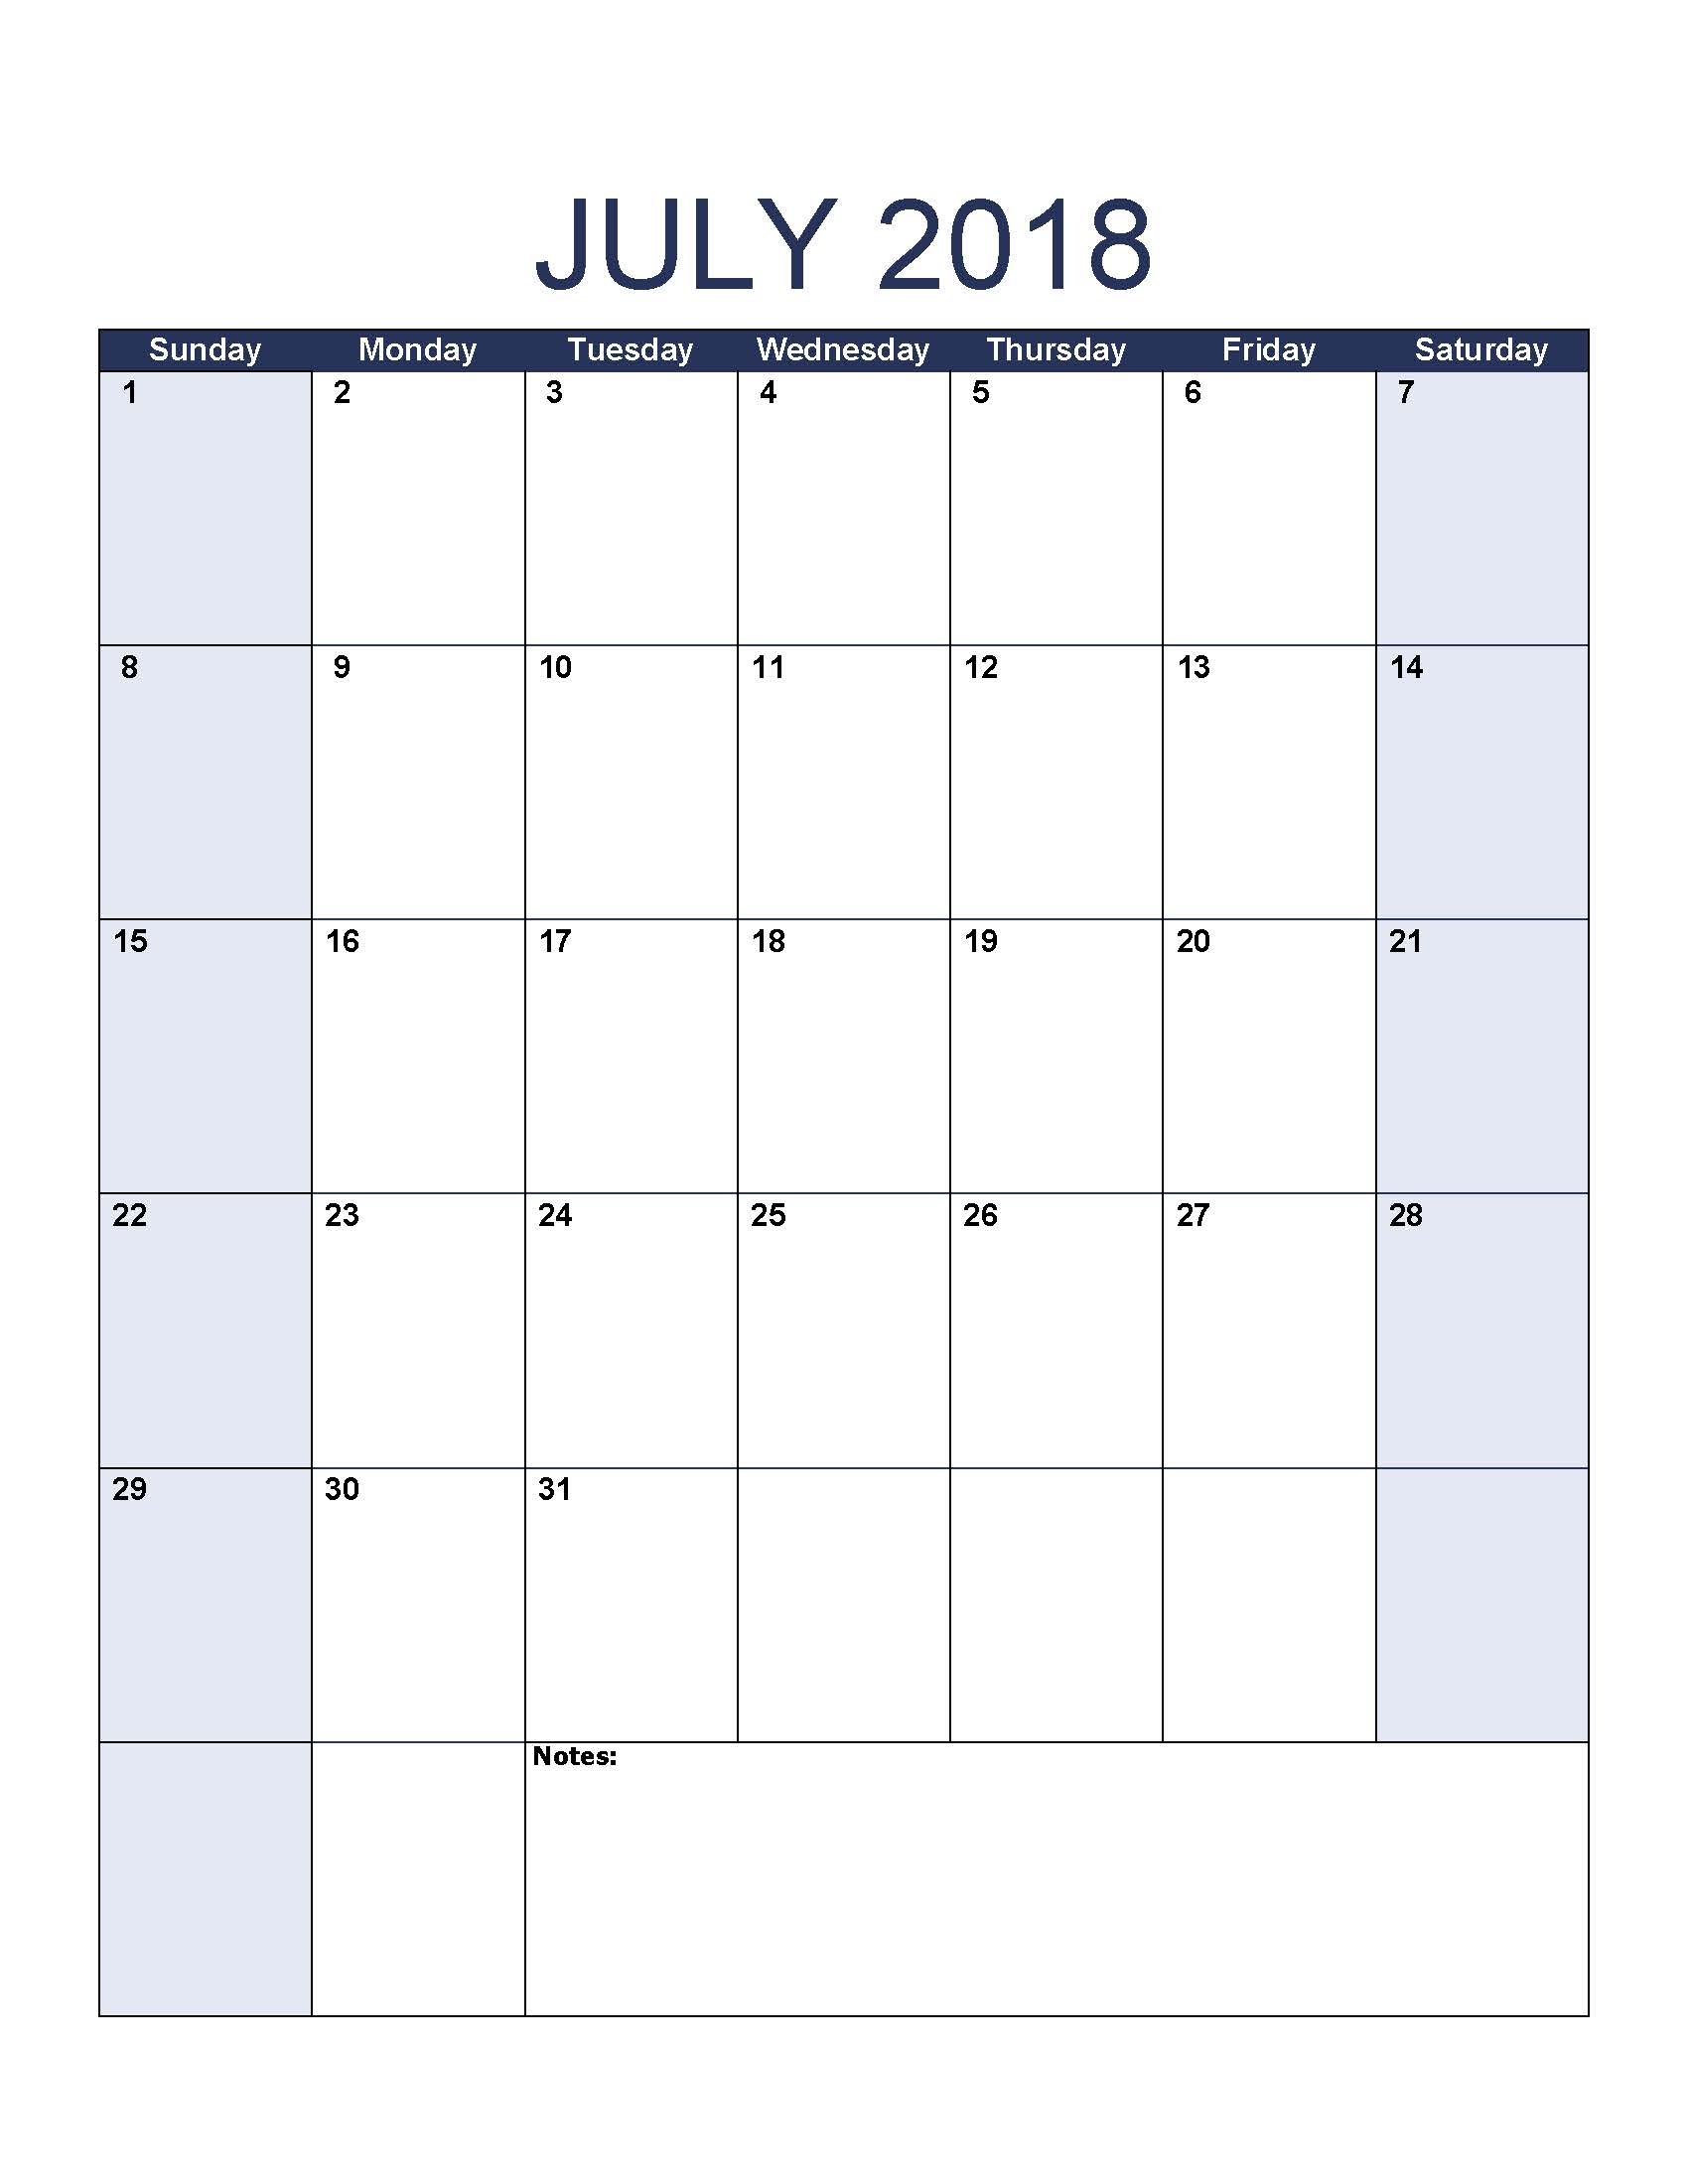 Online Calendar of July 2018